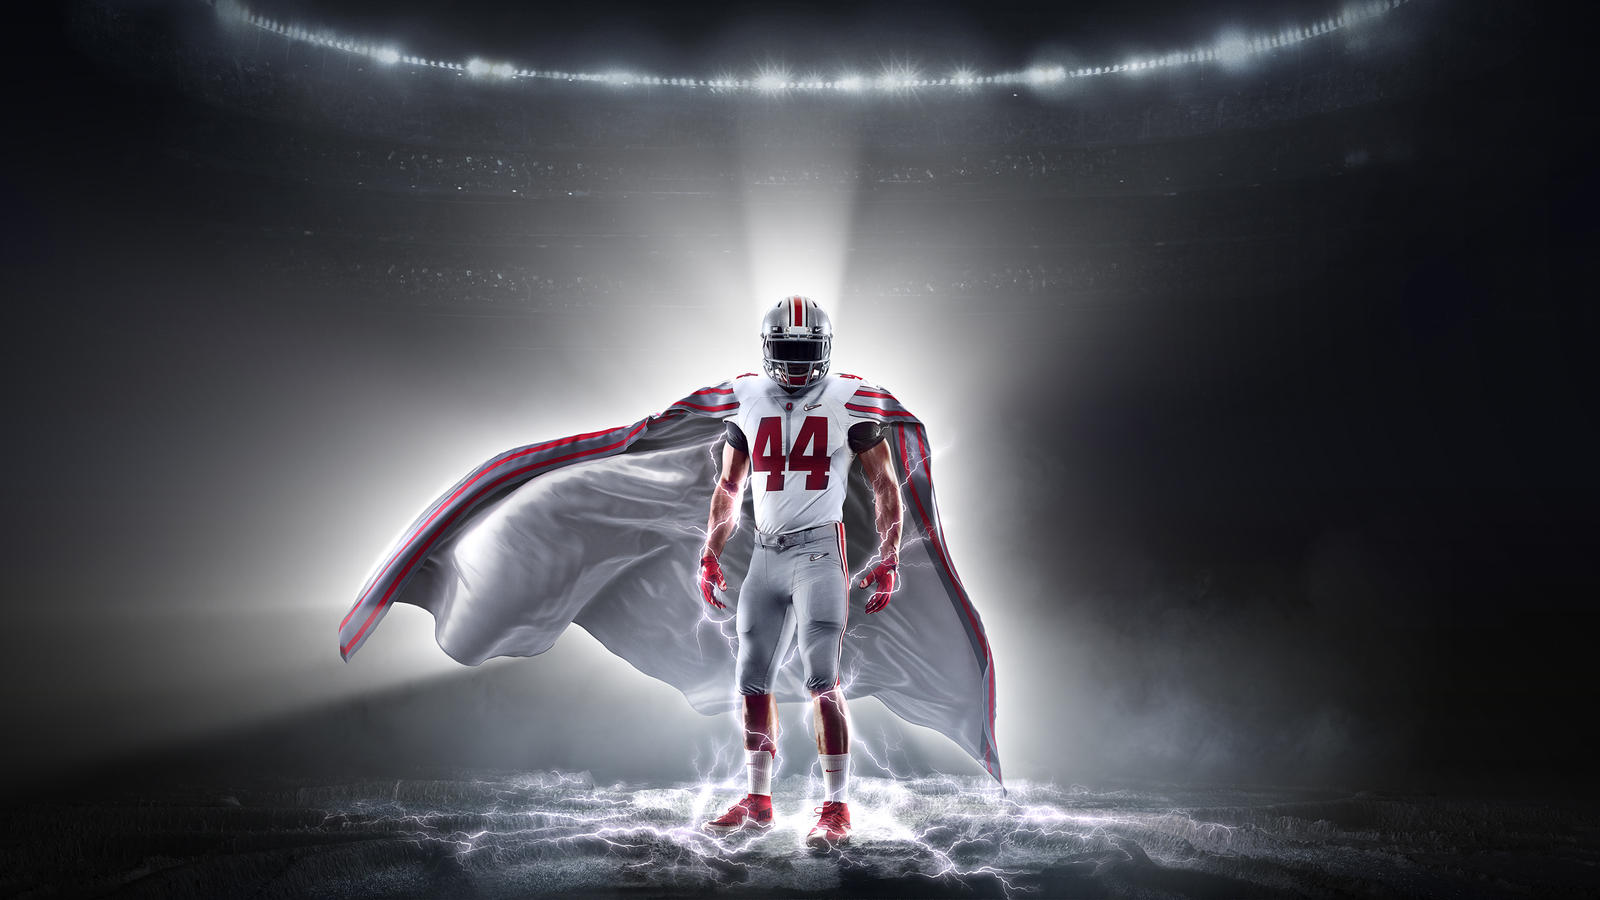 Ohio States Relationship With Nike Began In 1981 As One Of The Original College Football Programs To Be Outfitted Footwear